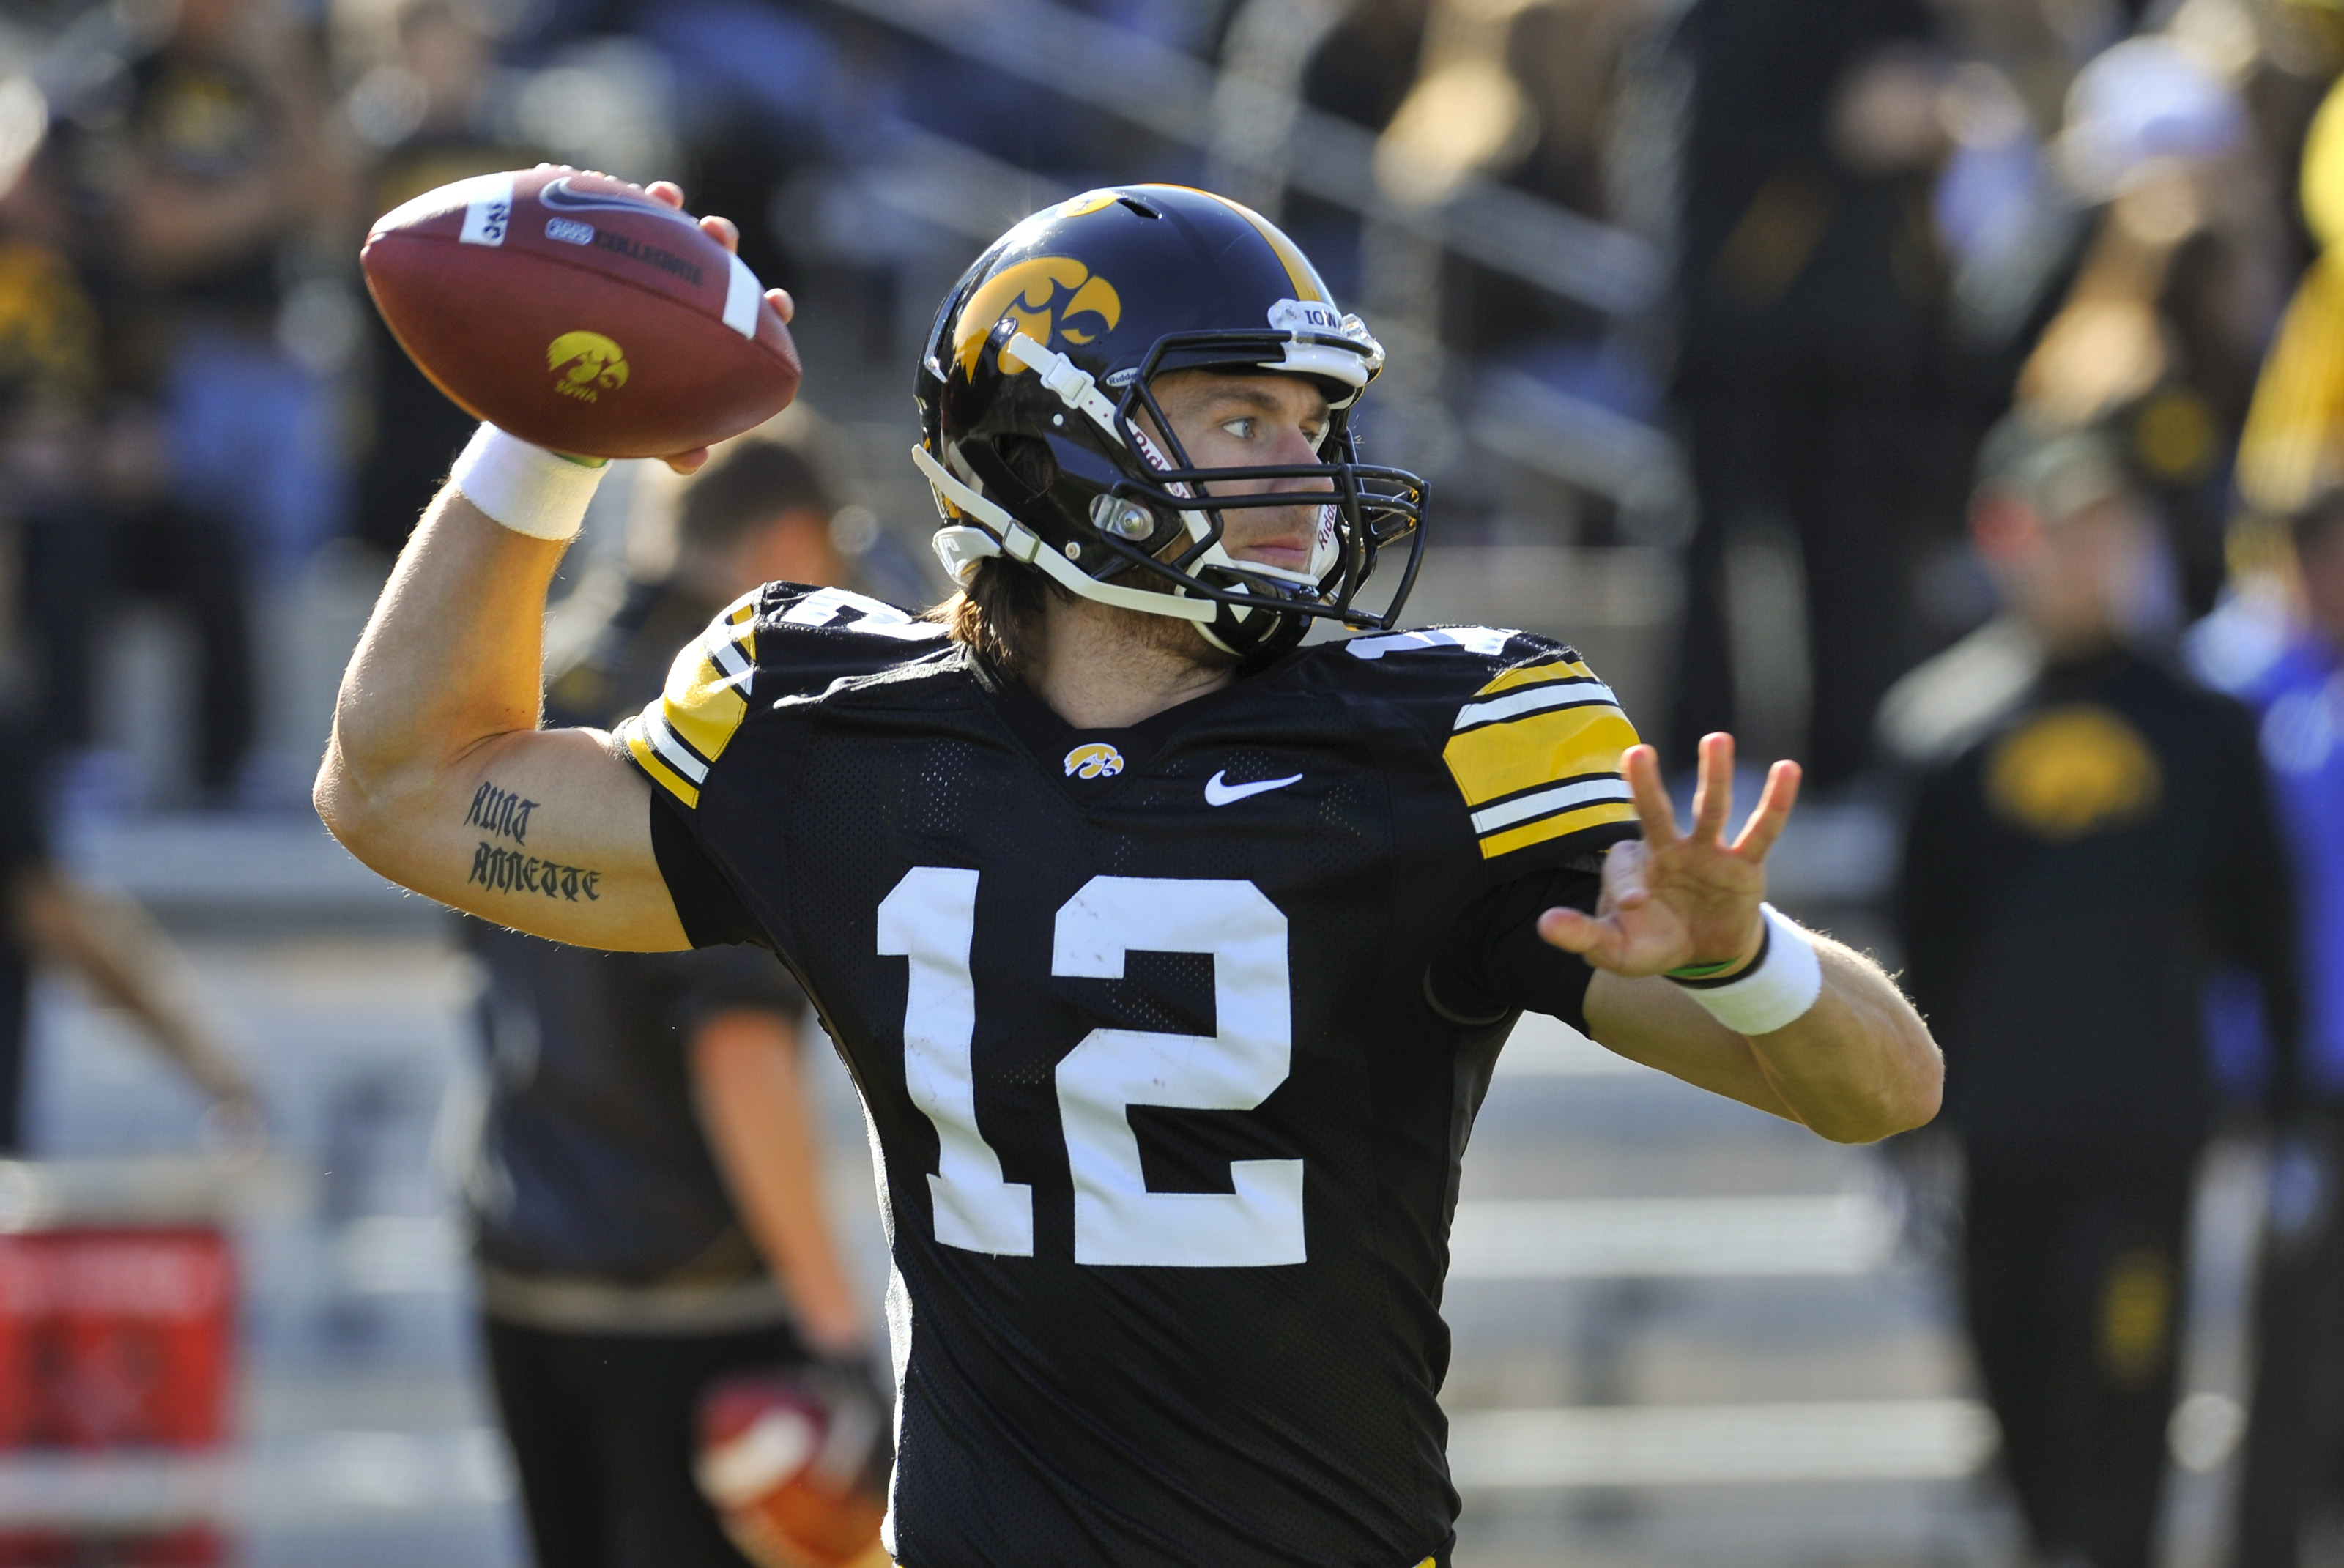 IOWA CITY, IA - OCTOBER 30- Quarterback Ricky Stanzi #12 of the University of Iowa Hawkeyes warms up his throwing arm before play against the Michigan State Spartans at Kinnick Stadium on October 30, 2010 in Iowa City, Iowa. Iowa won 37-6 over Michigan St